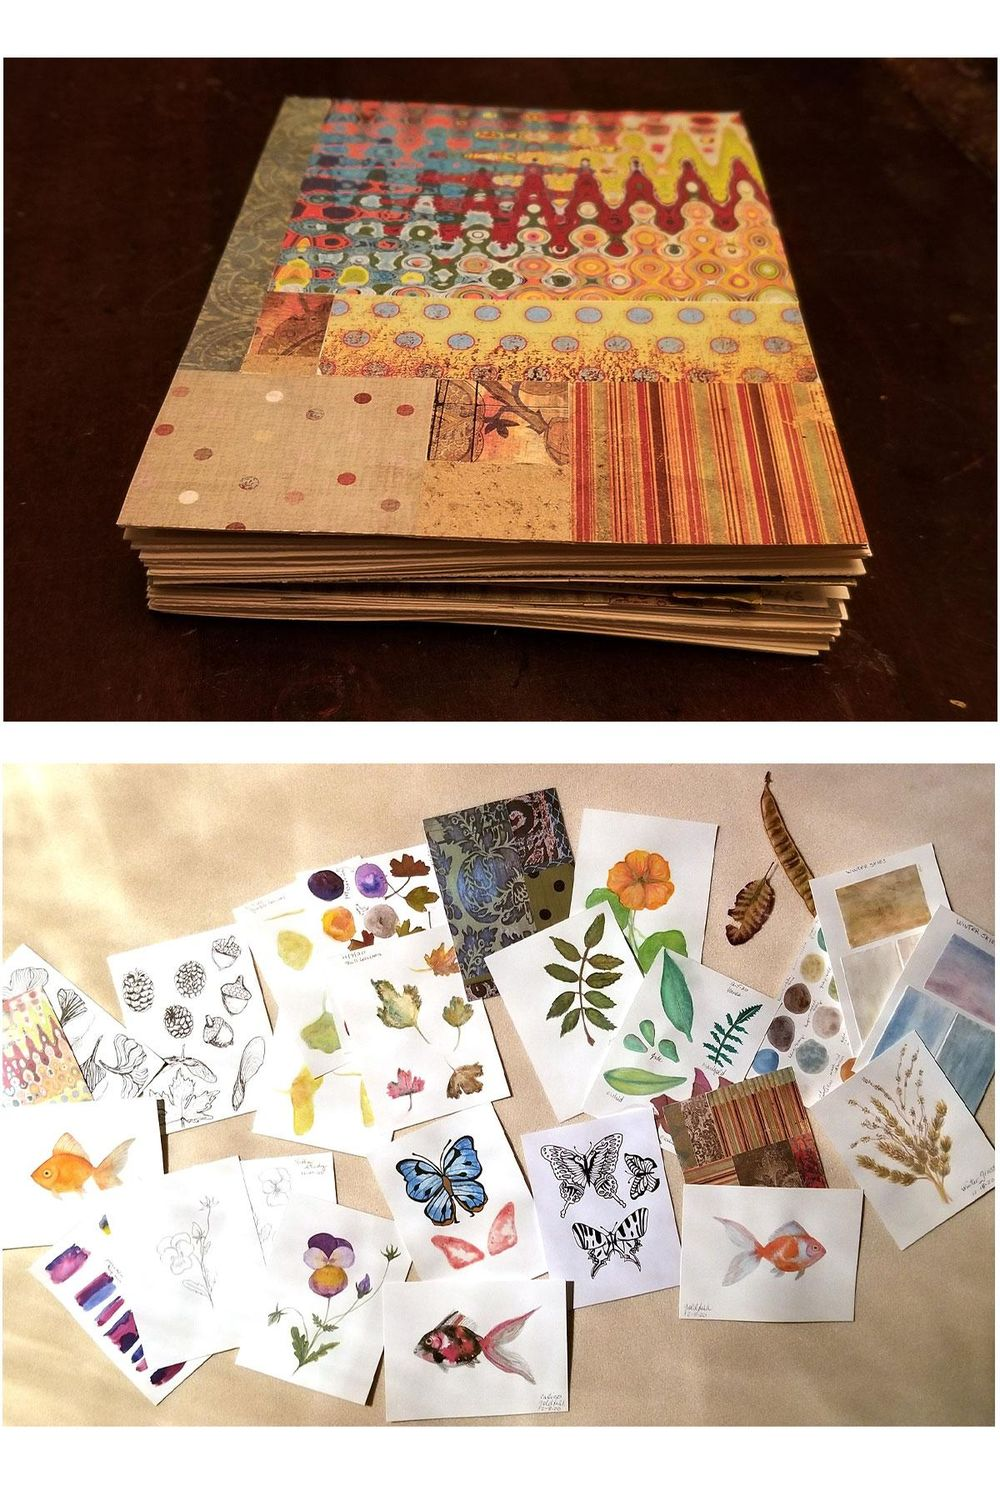 Structuring-creating small sketchbook - image 1 - student project